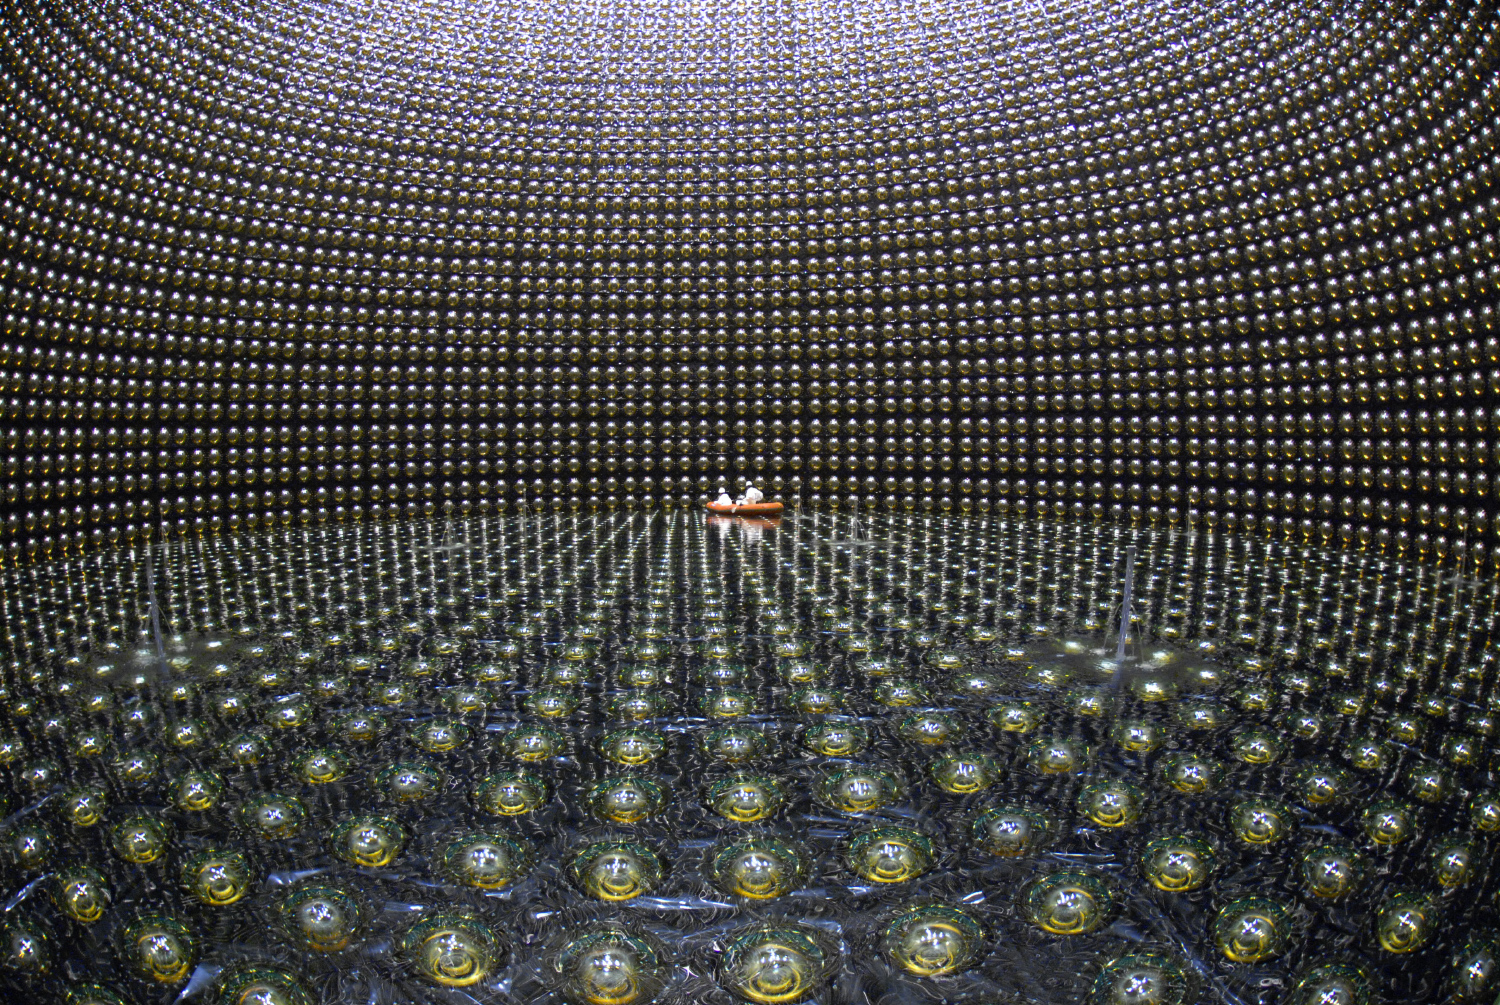 <p>At the Super-Kamiokande observatory in Kamioka, Japan — shown here when it was being filled with water in 2006 — neutrinos interact with atoms inside the water, generating flashes of radiation that are picked up by the surrounding sensors and analyzed to determine the neutrinos' flavors.</p>